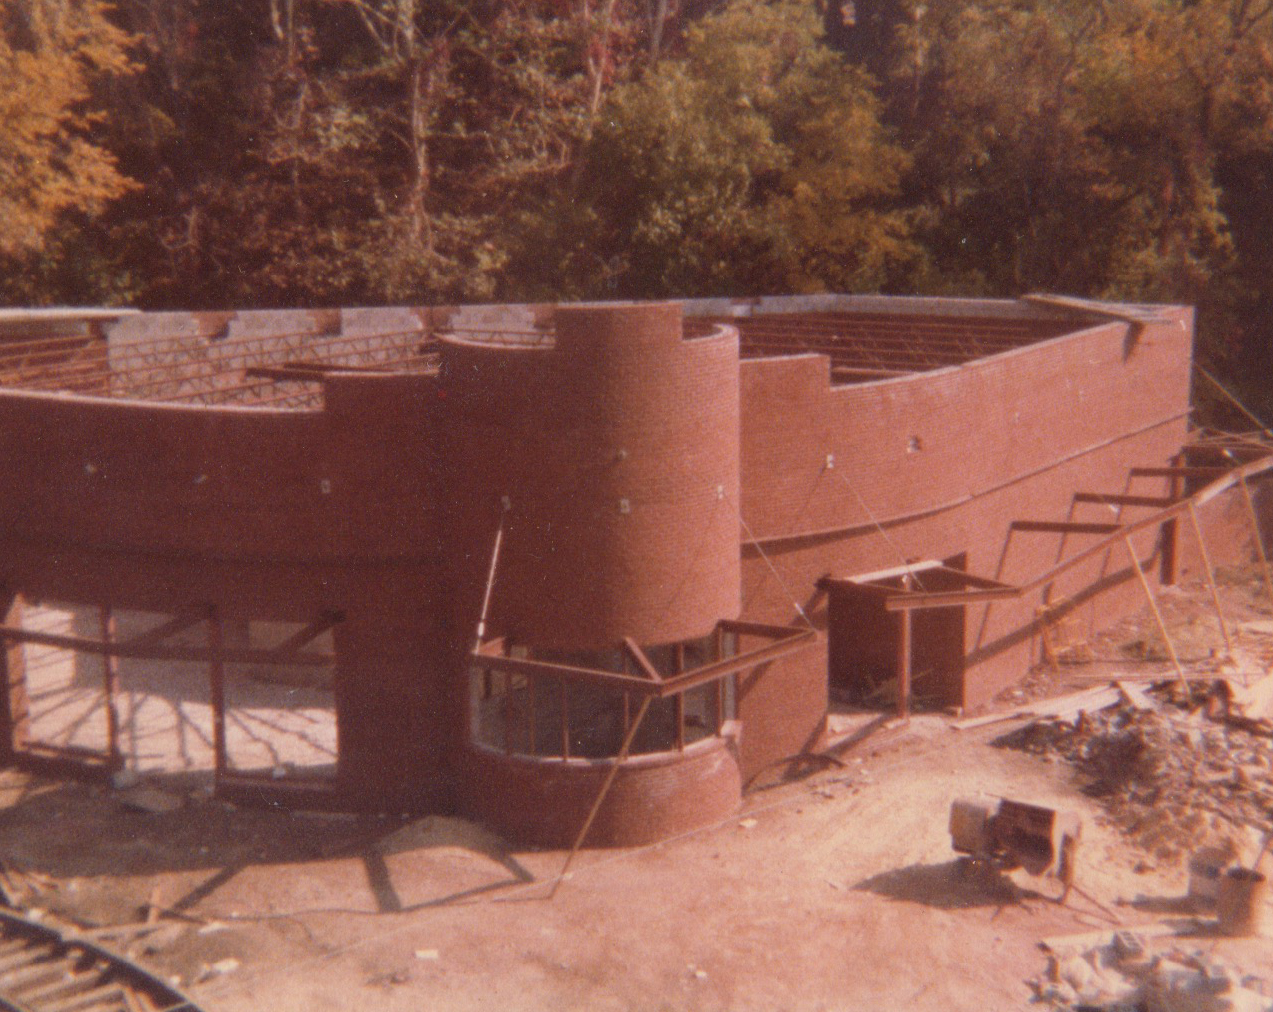 Construction progresses on BSM Visitors' Center, circa 1977. Image Credit: MRHL Archives